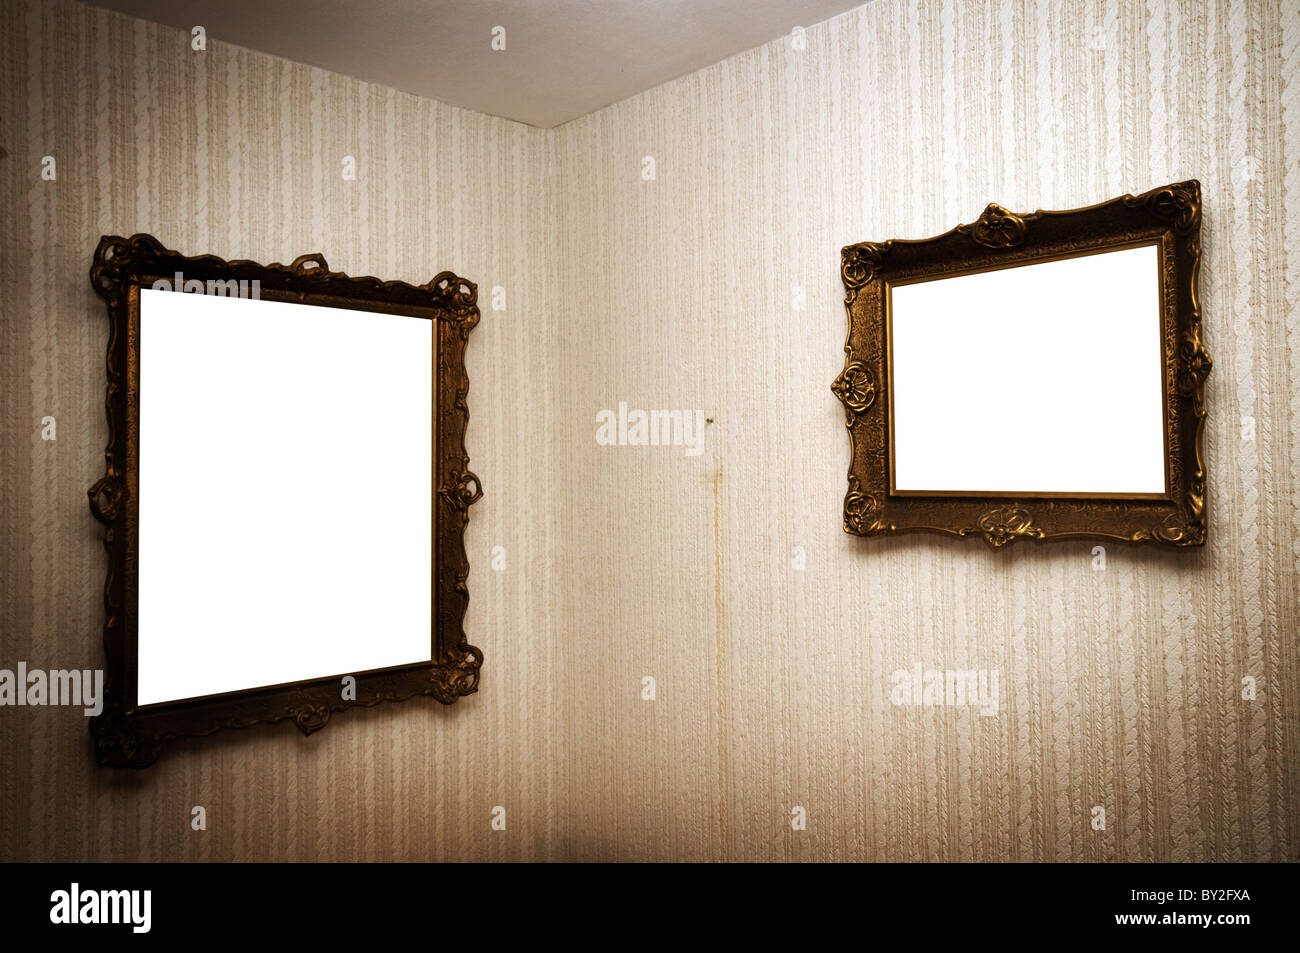 Old ornamented frames on retro grunge wall - Stock Image